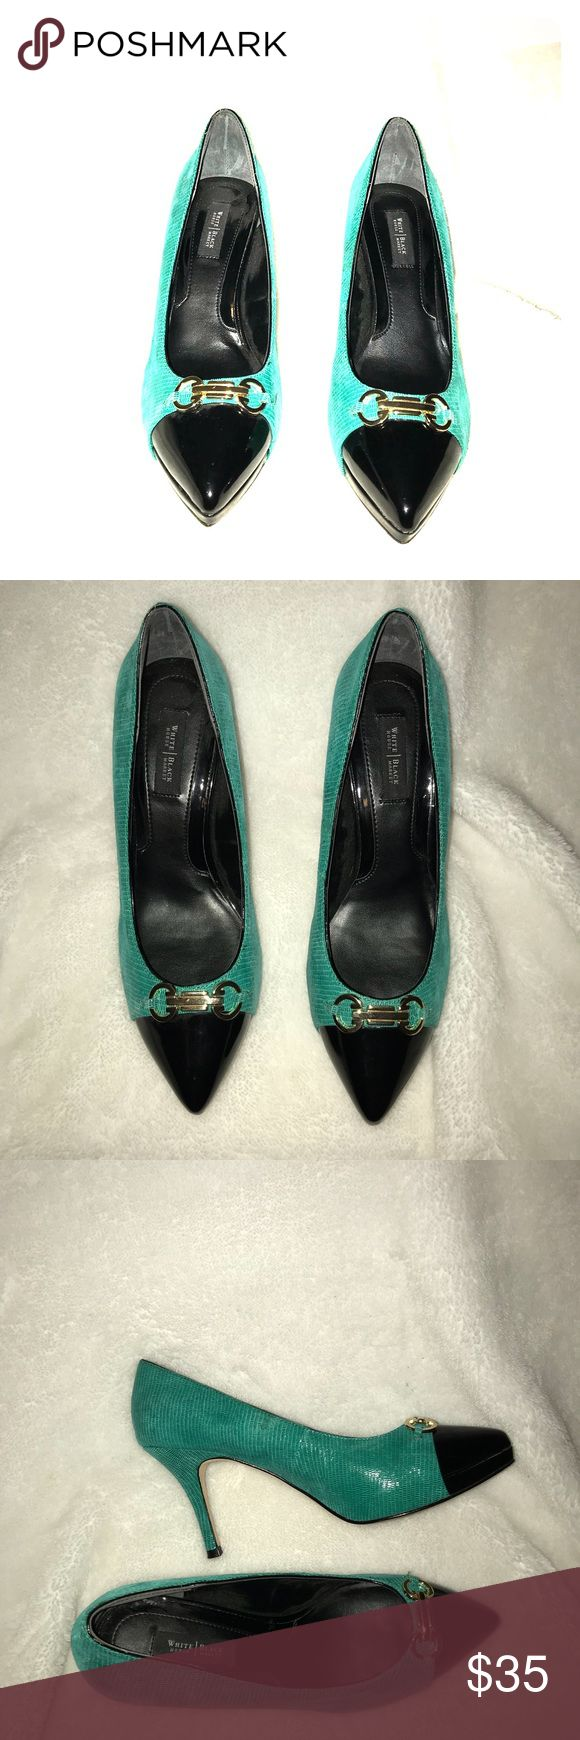 White House Black Market Green Snakeskin Pumps For sale:White House Black Market WHBM Green Snakeskin Pointed Toe Pumps/Heels with Black Patent and Goldtone Horseshoe Details.Size 8M. Excellent pre-owned condition. Interested? White House Black Market Shoes Heels